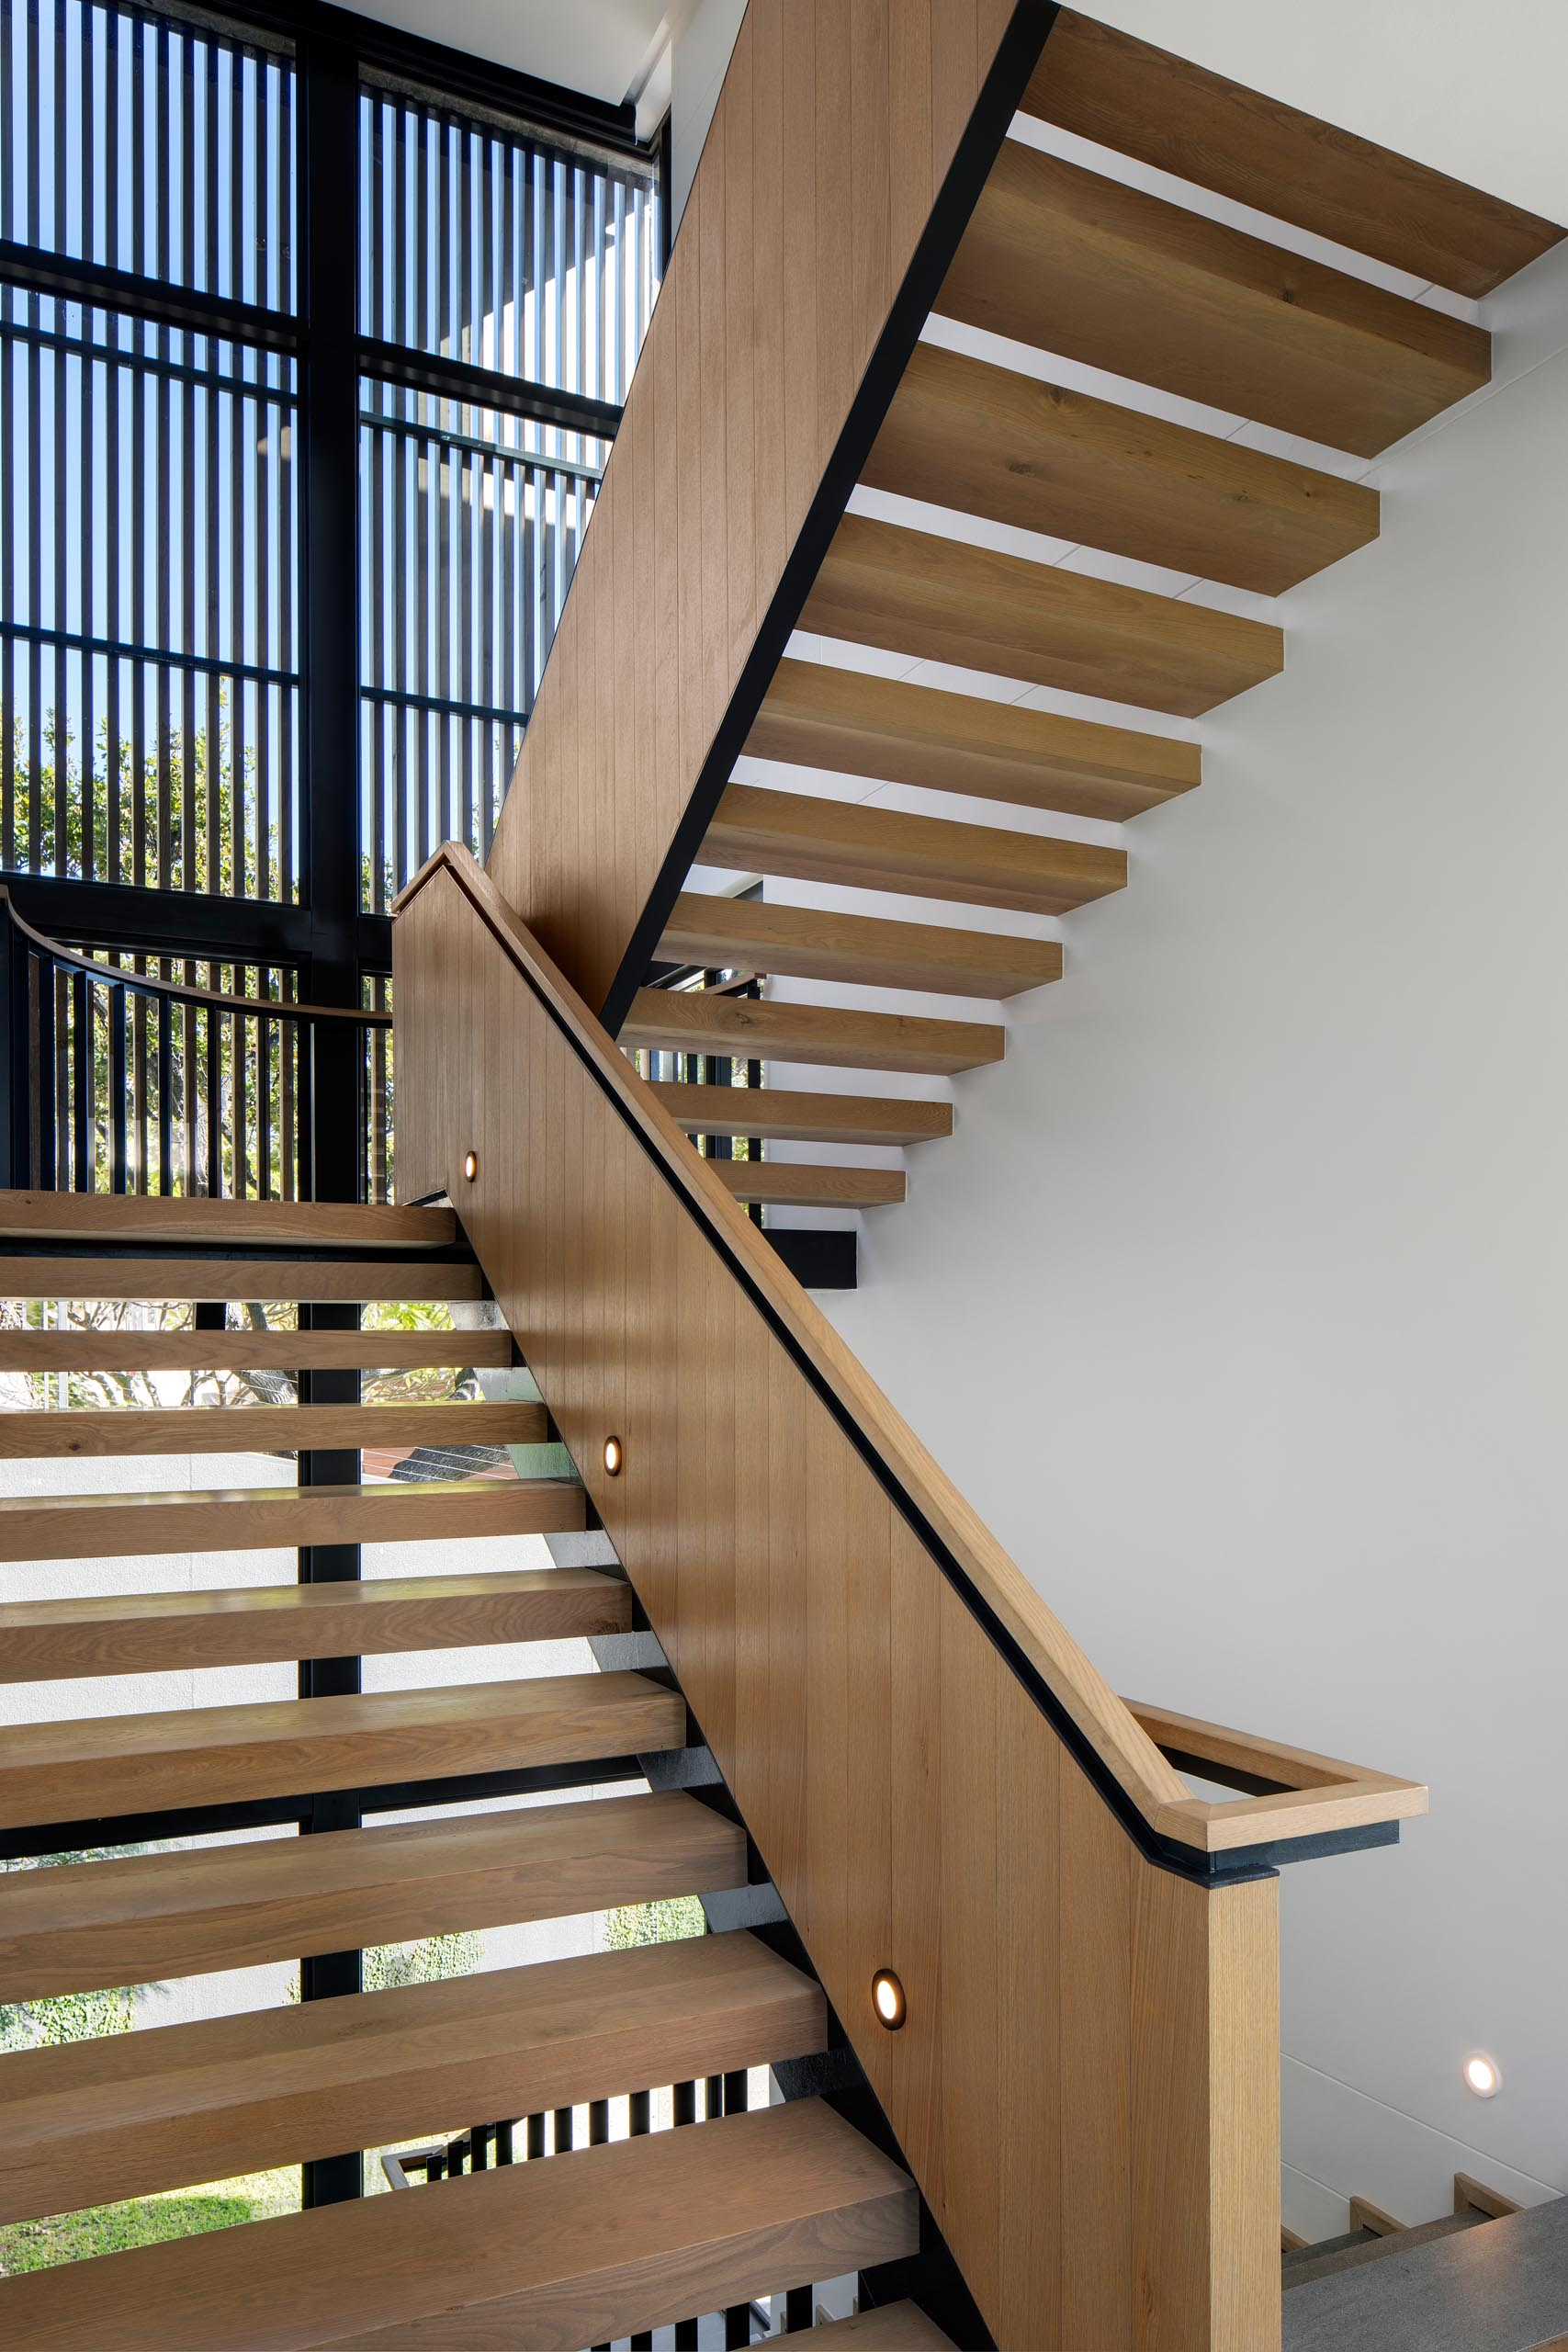 A modern wood staircase with black accents.